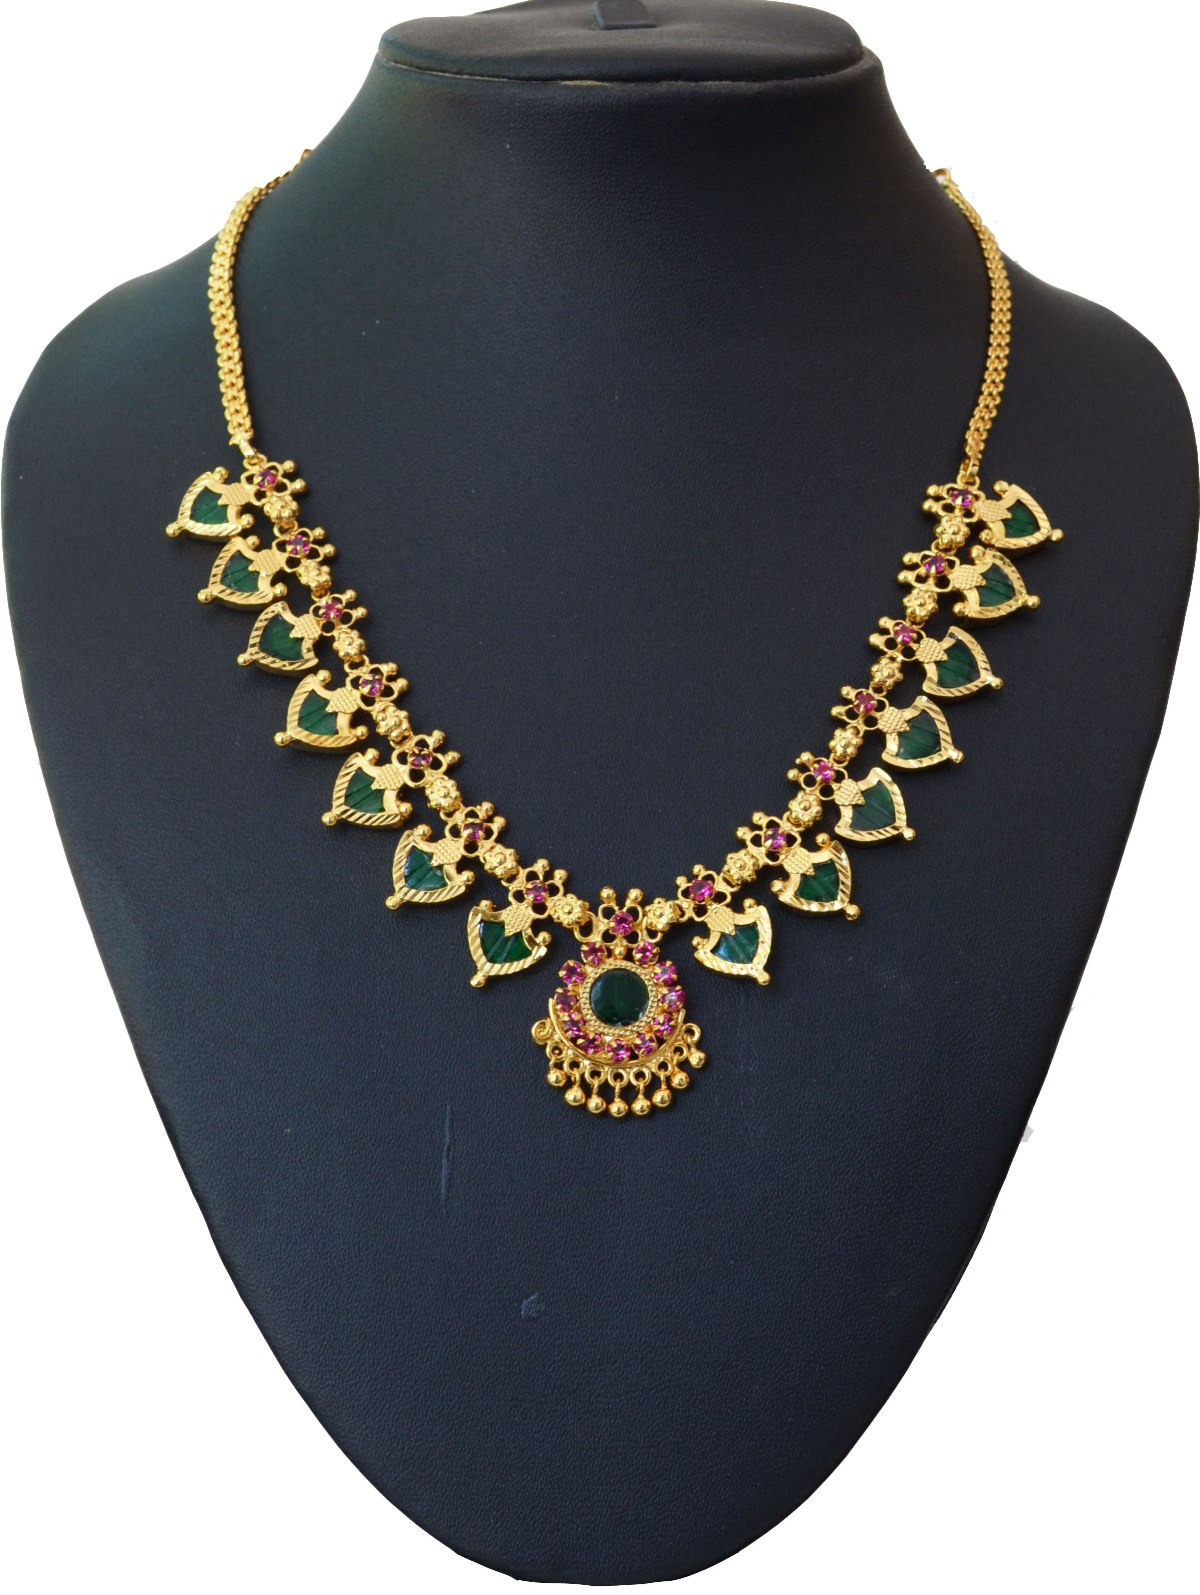 Necklace Designs – Buy Gold Necklace for Girls / Women Online India